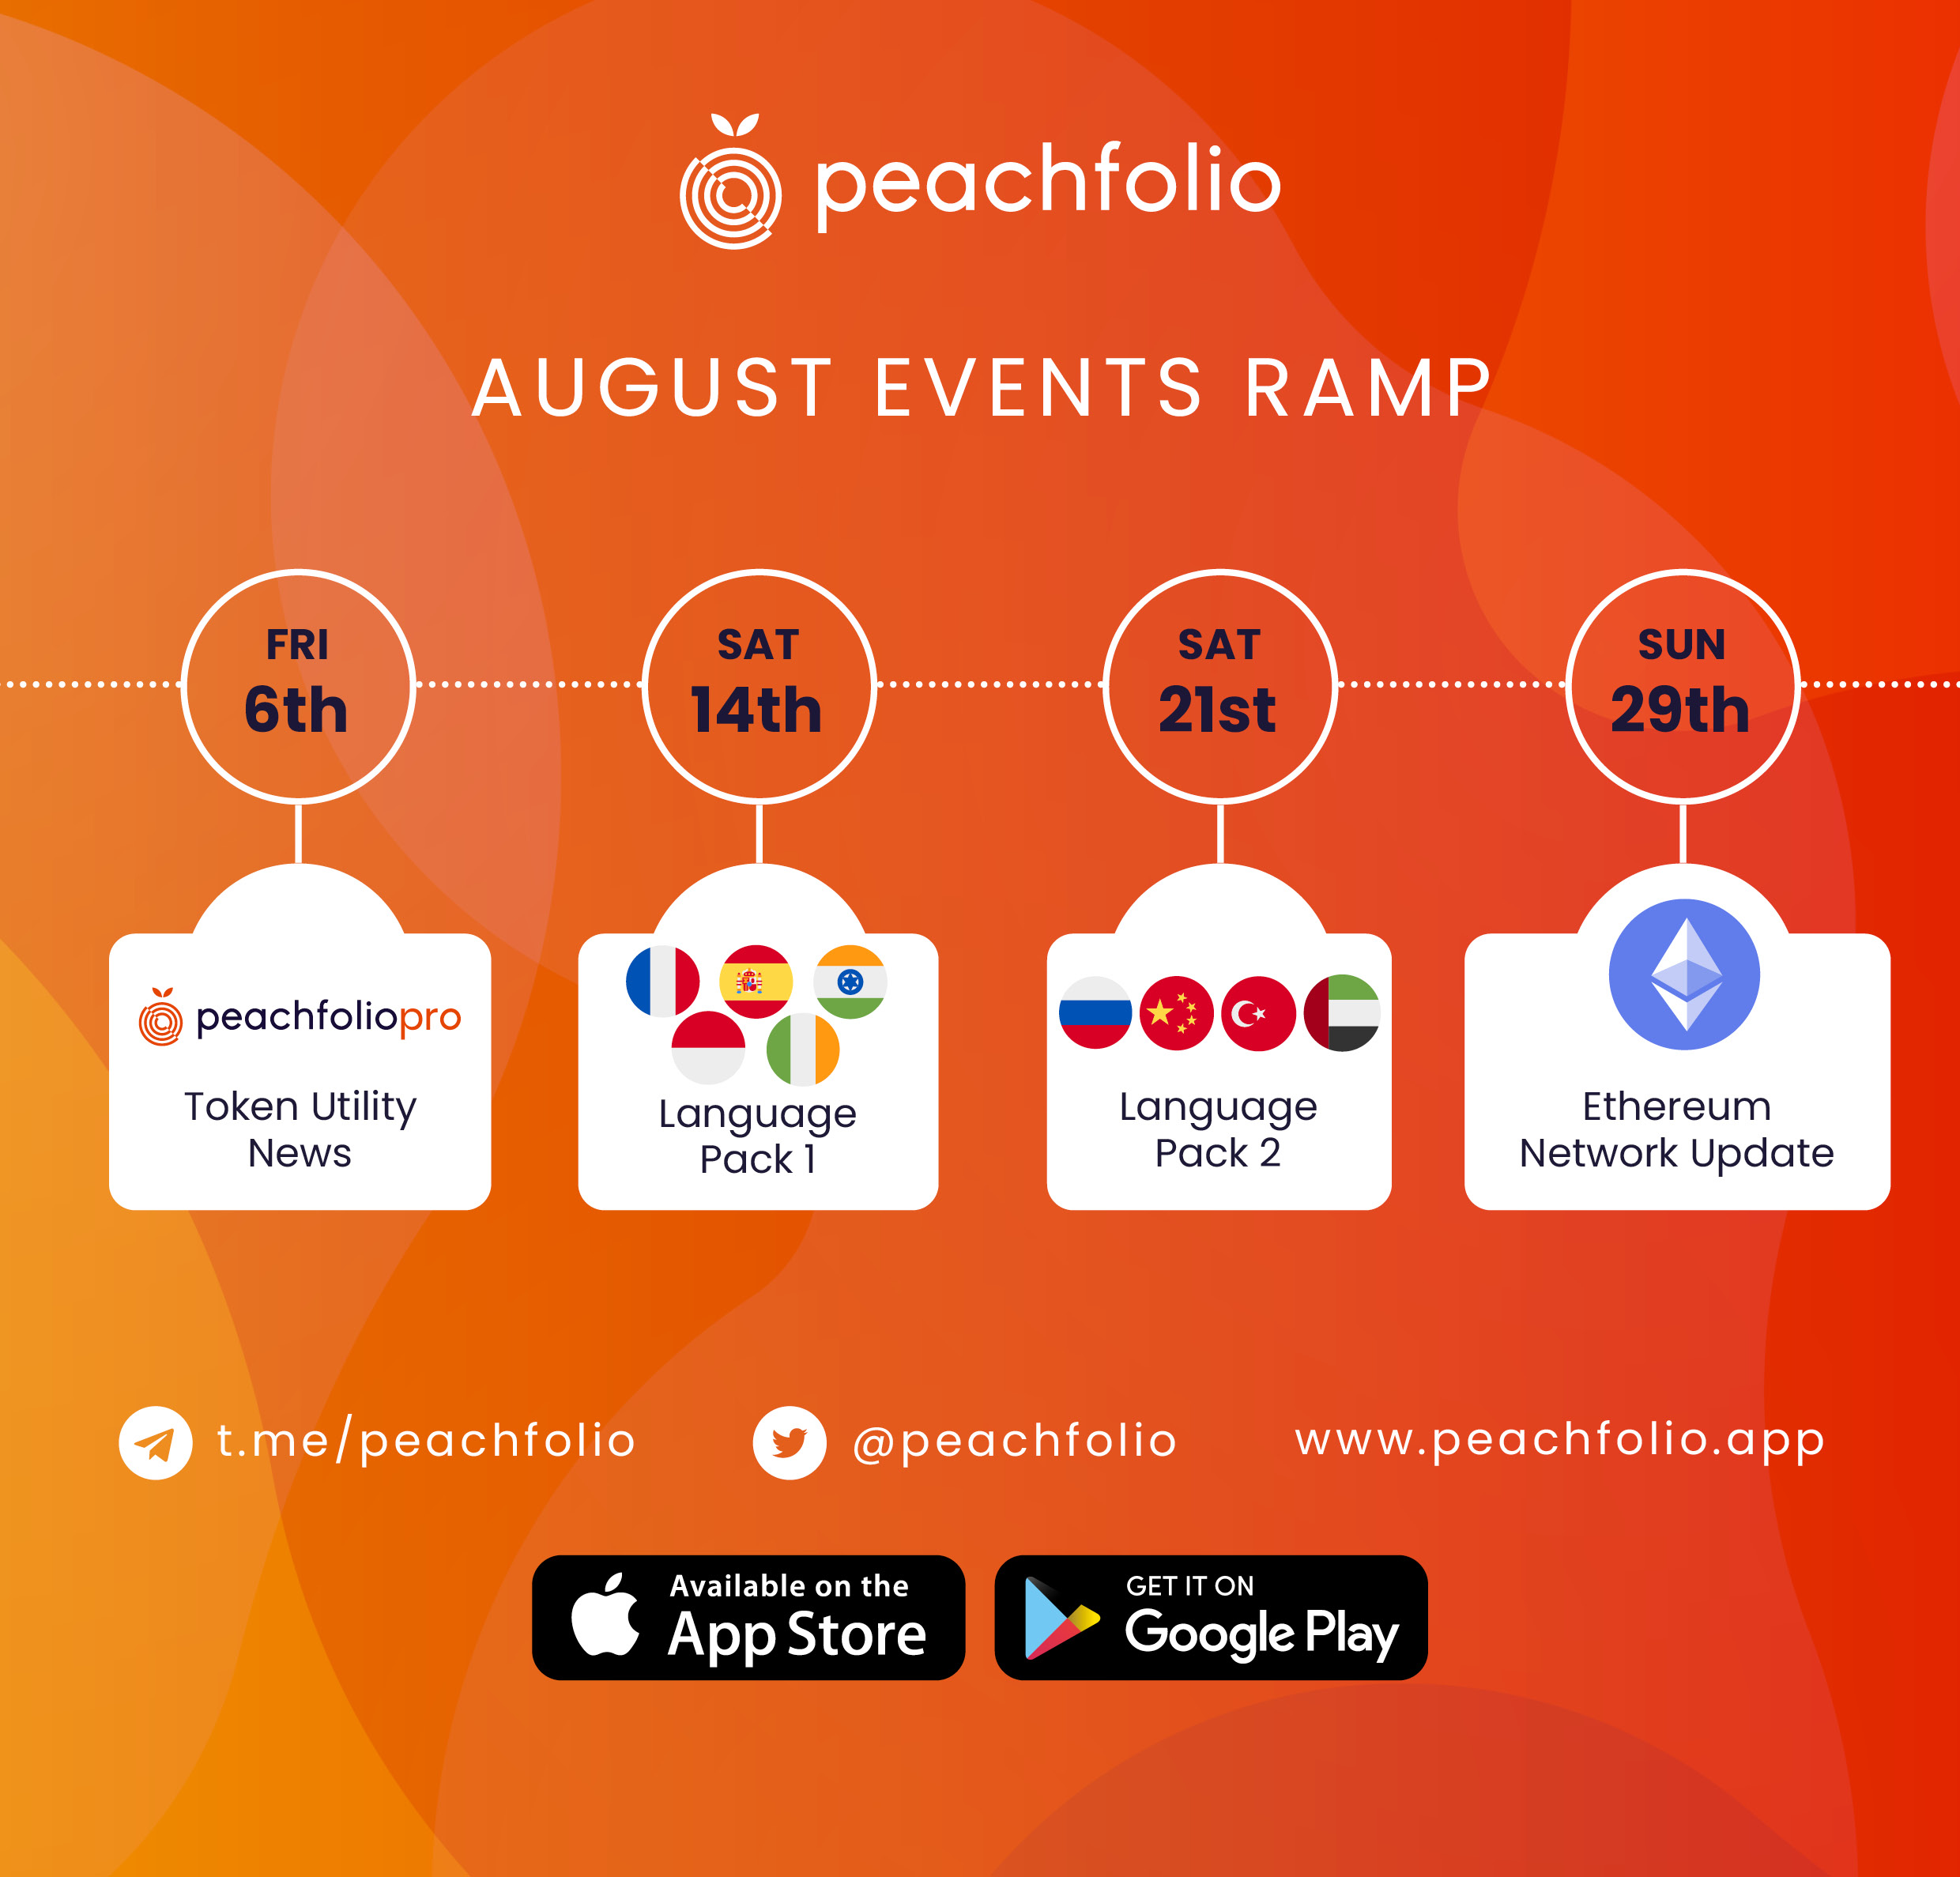 August Events Ramp for marketing the Peachfolio app and token